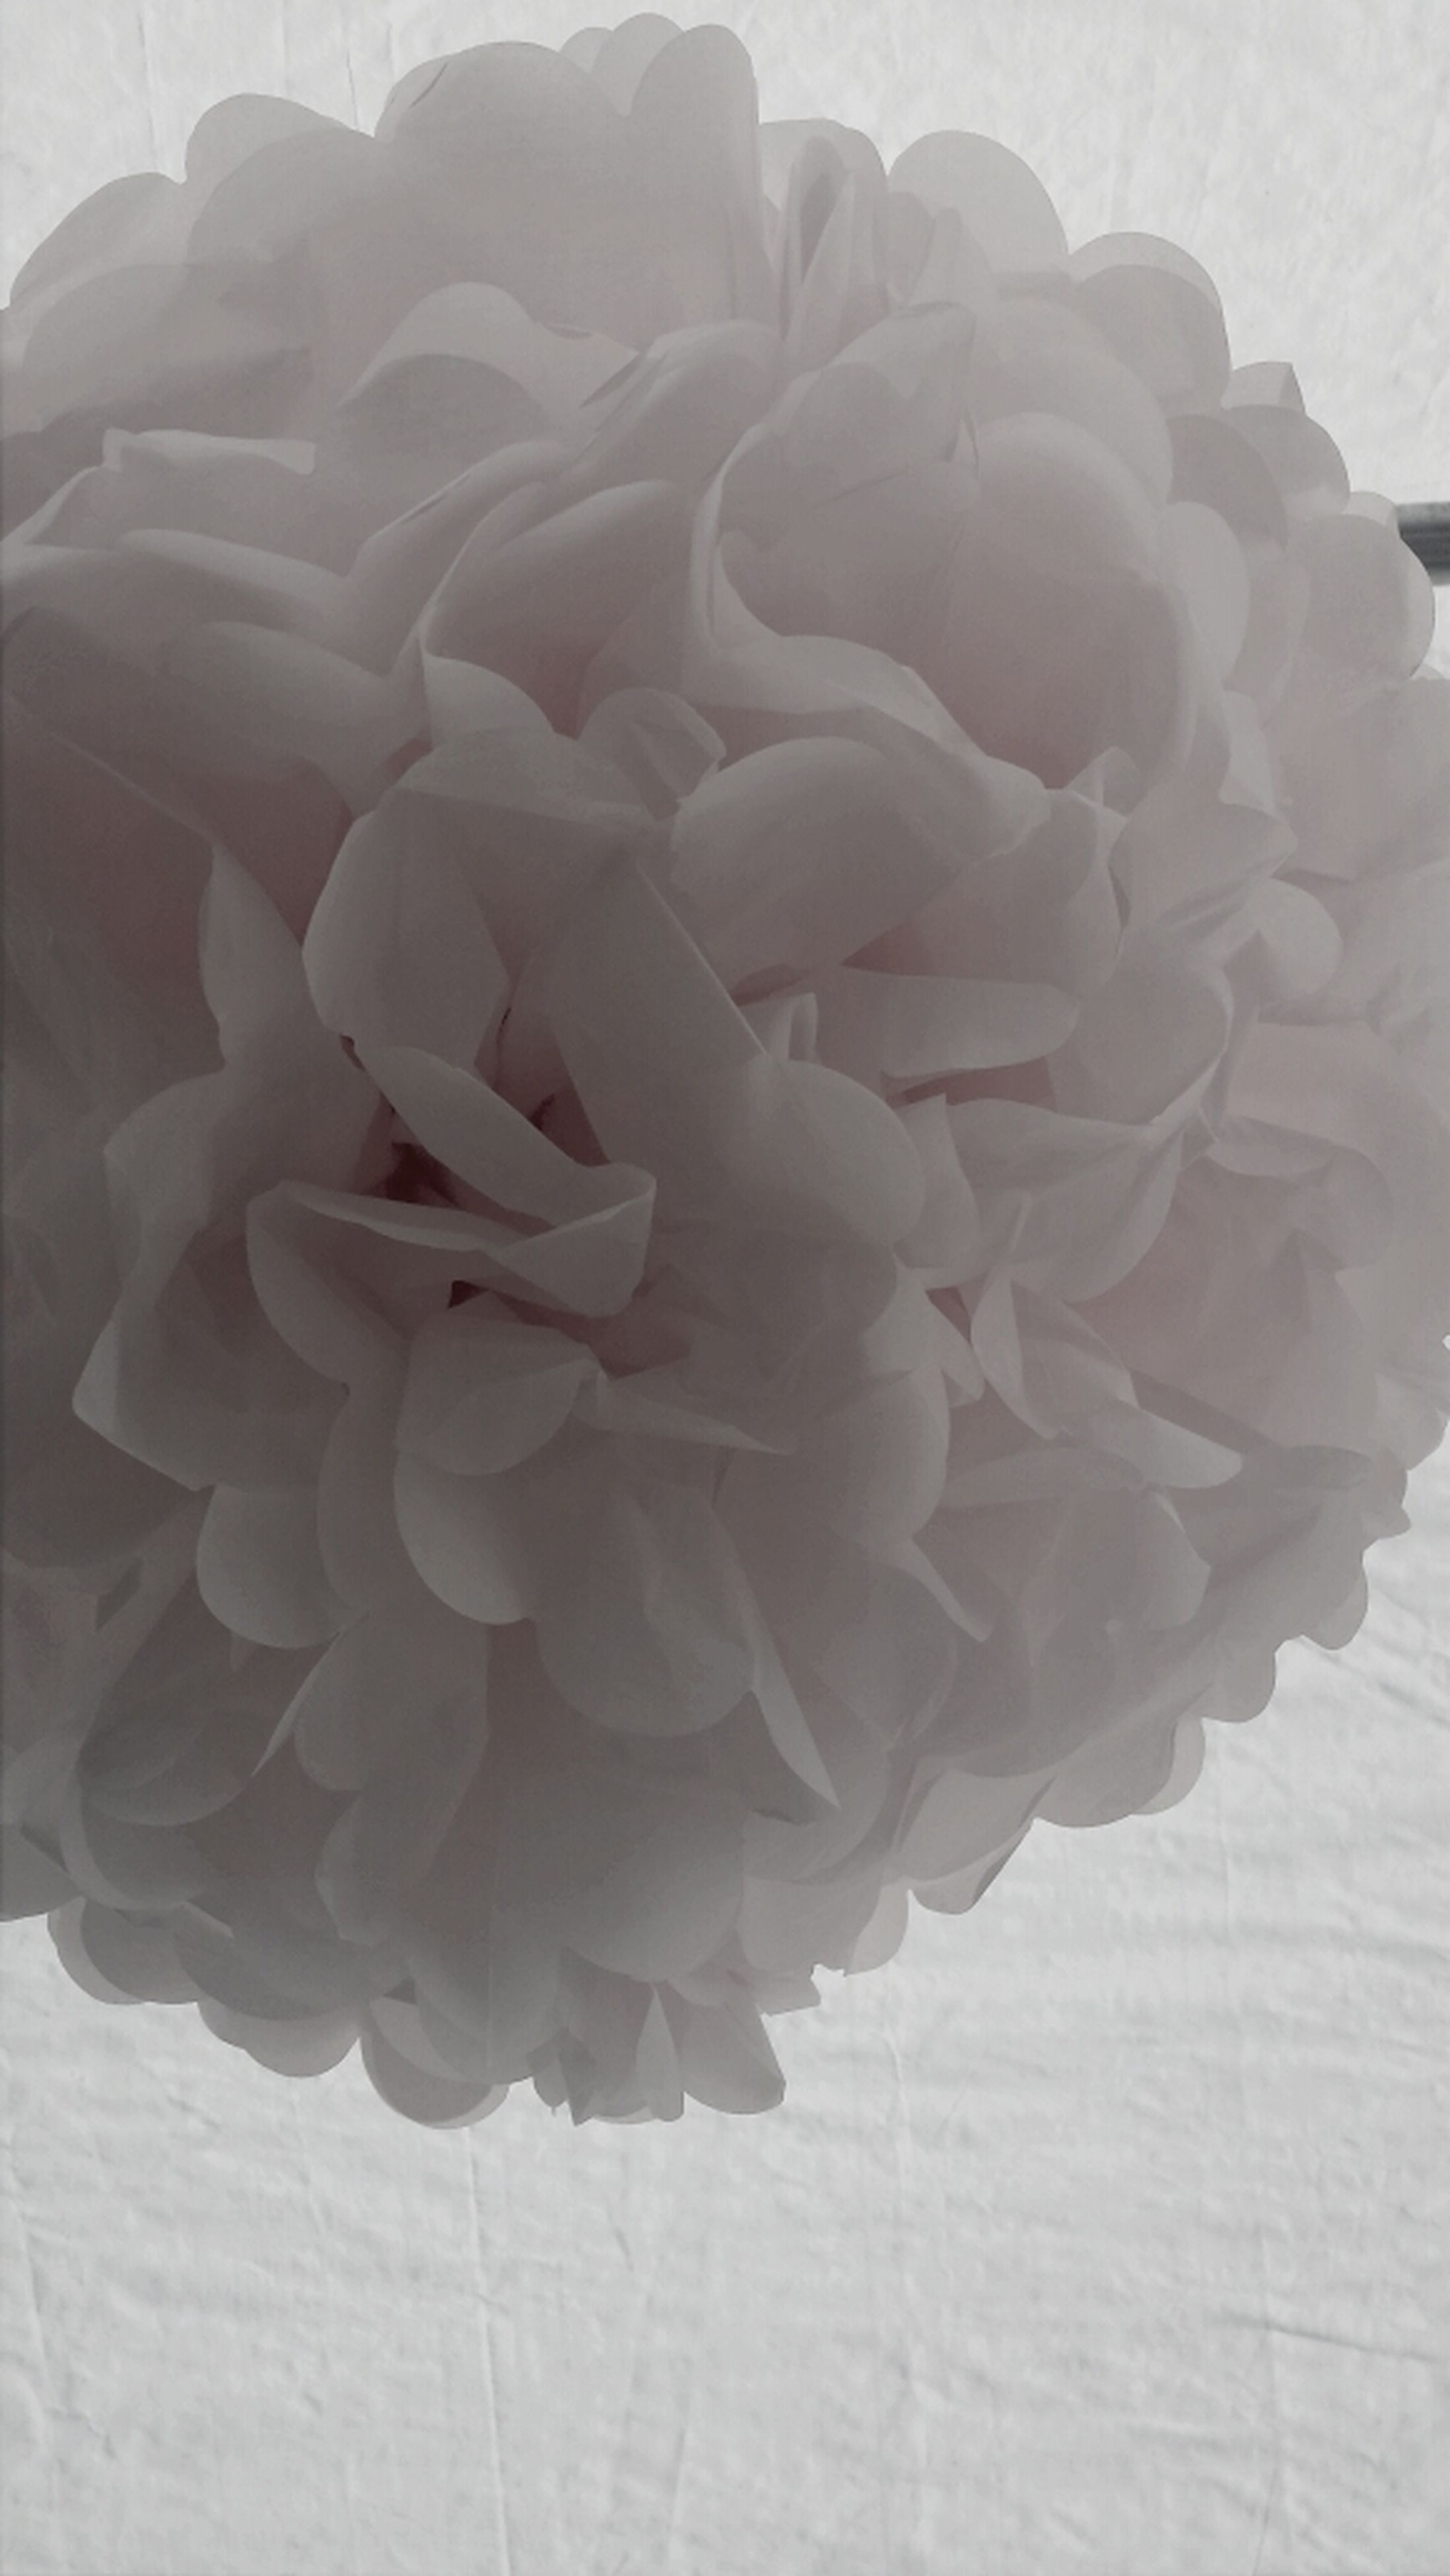 flower, petal, flower head, fragility, freshness, beauty in nature, rose - flower, close-up, growth, nature, blooming, single flower, plant, rose, natural pattern, no people, in bloom, white color, day, blossom